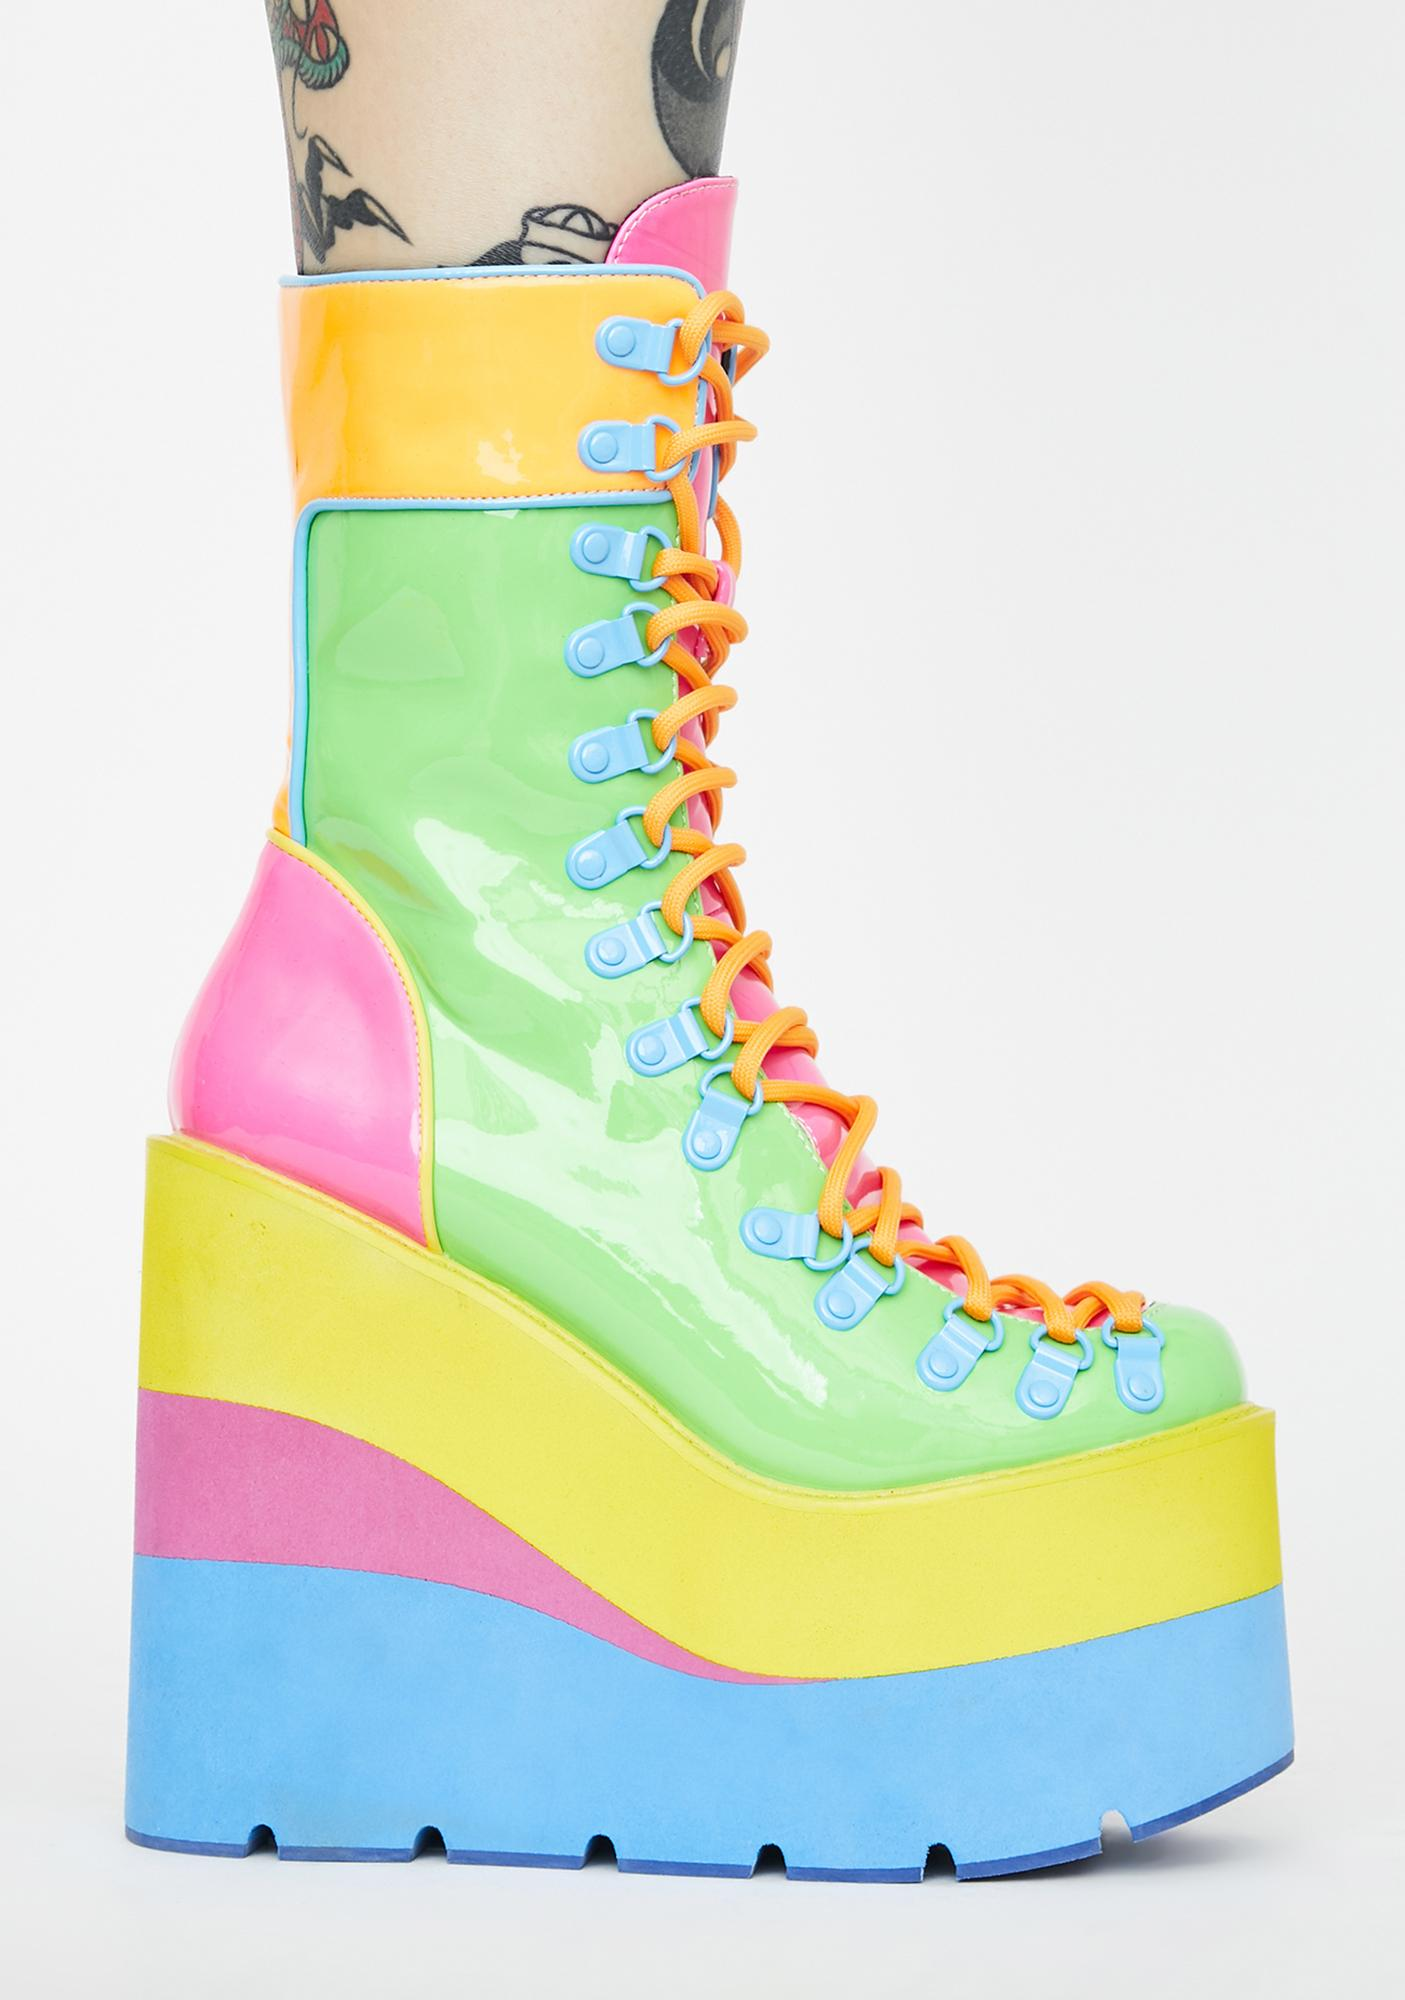 Club Exx Sour Candy Traitor Boots